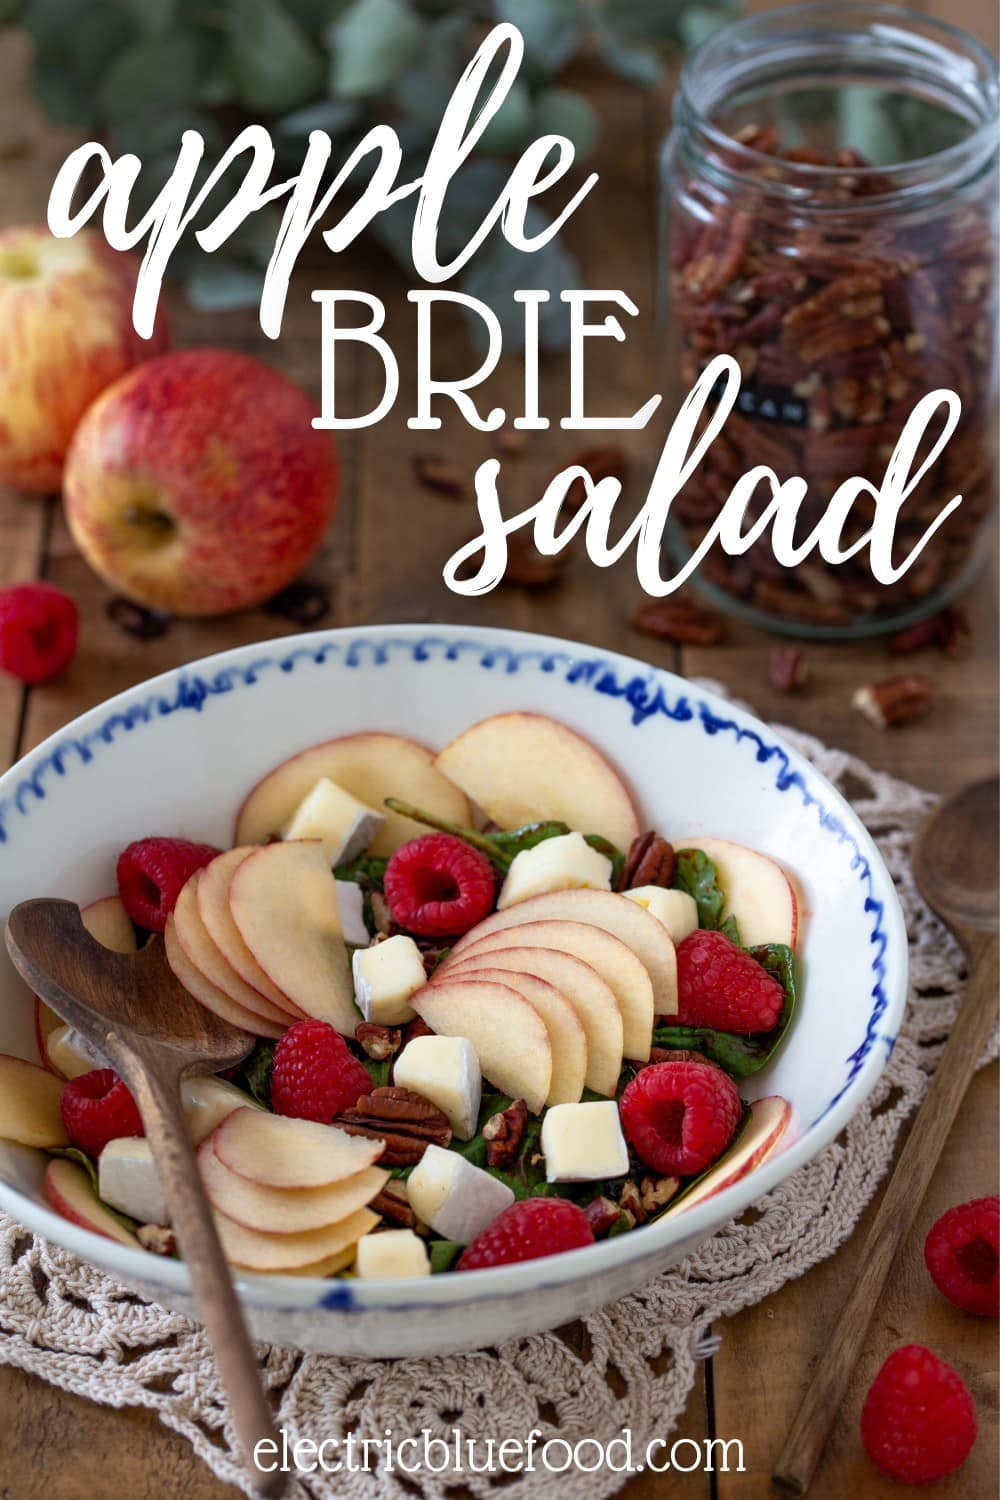 Apple brie salad with raspberries and pecans. A colourful salad with fresh fruits, nuts and a raspberry vinaigrette.